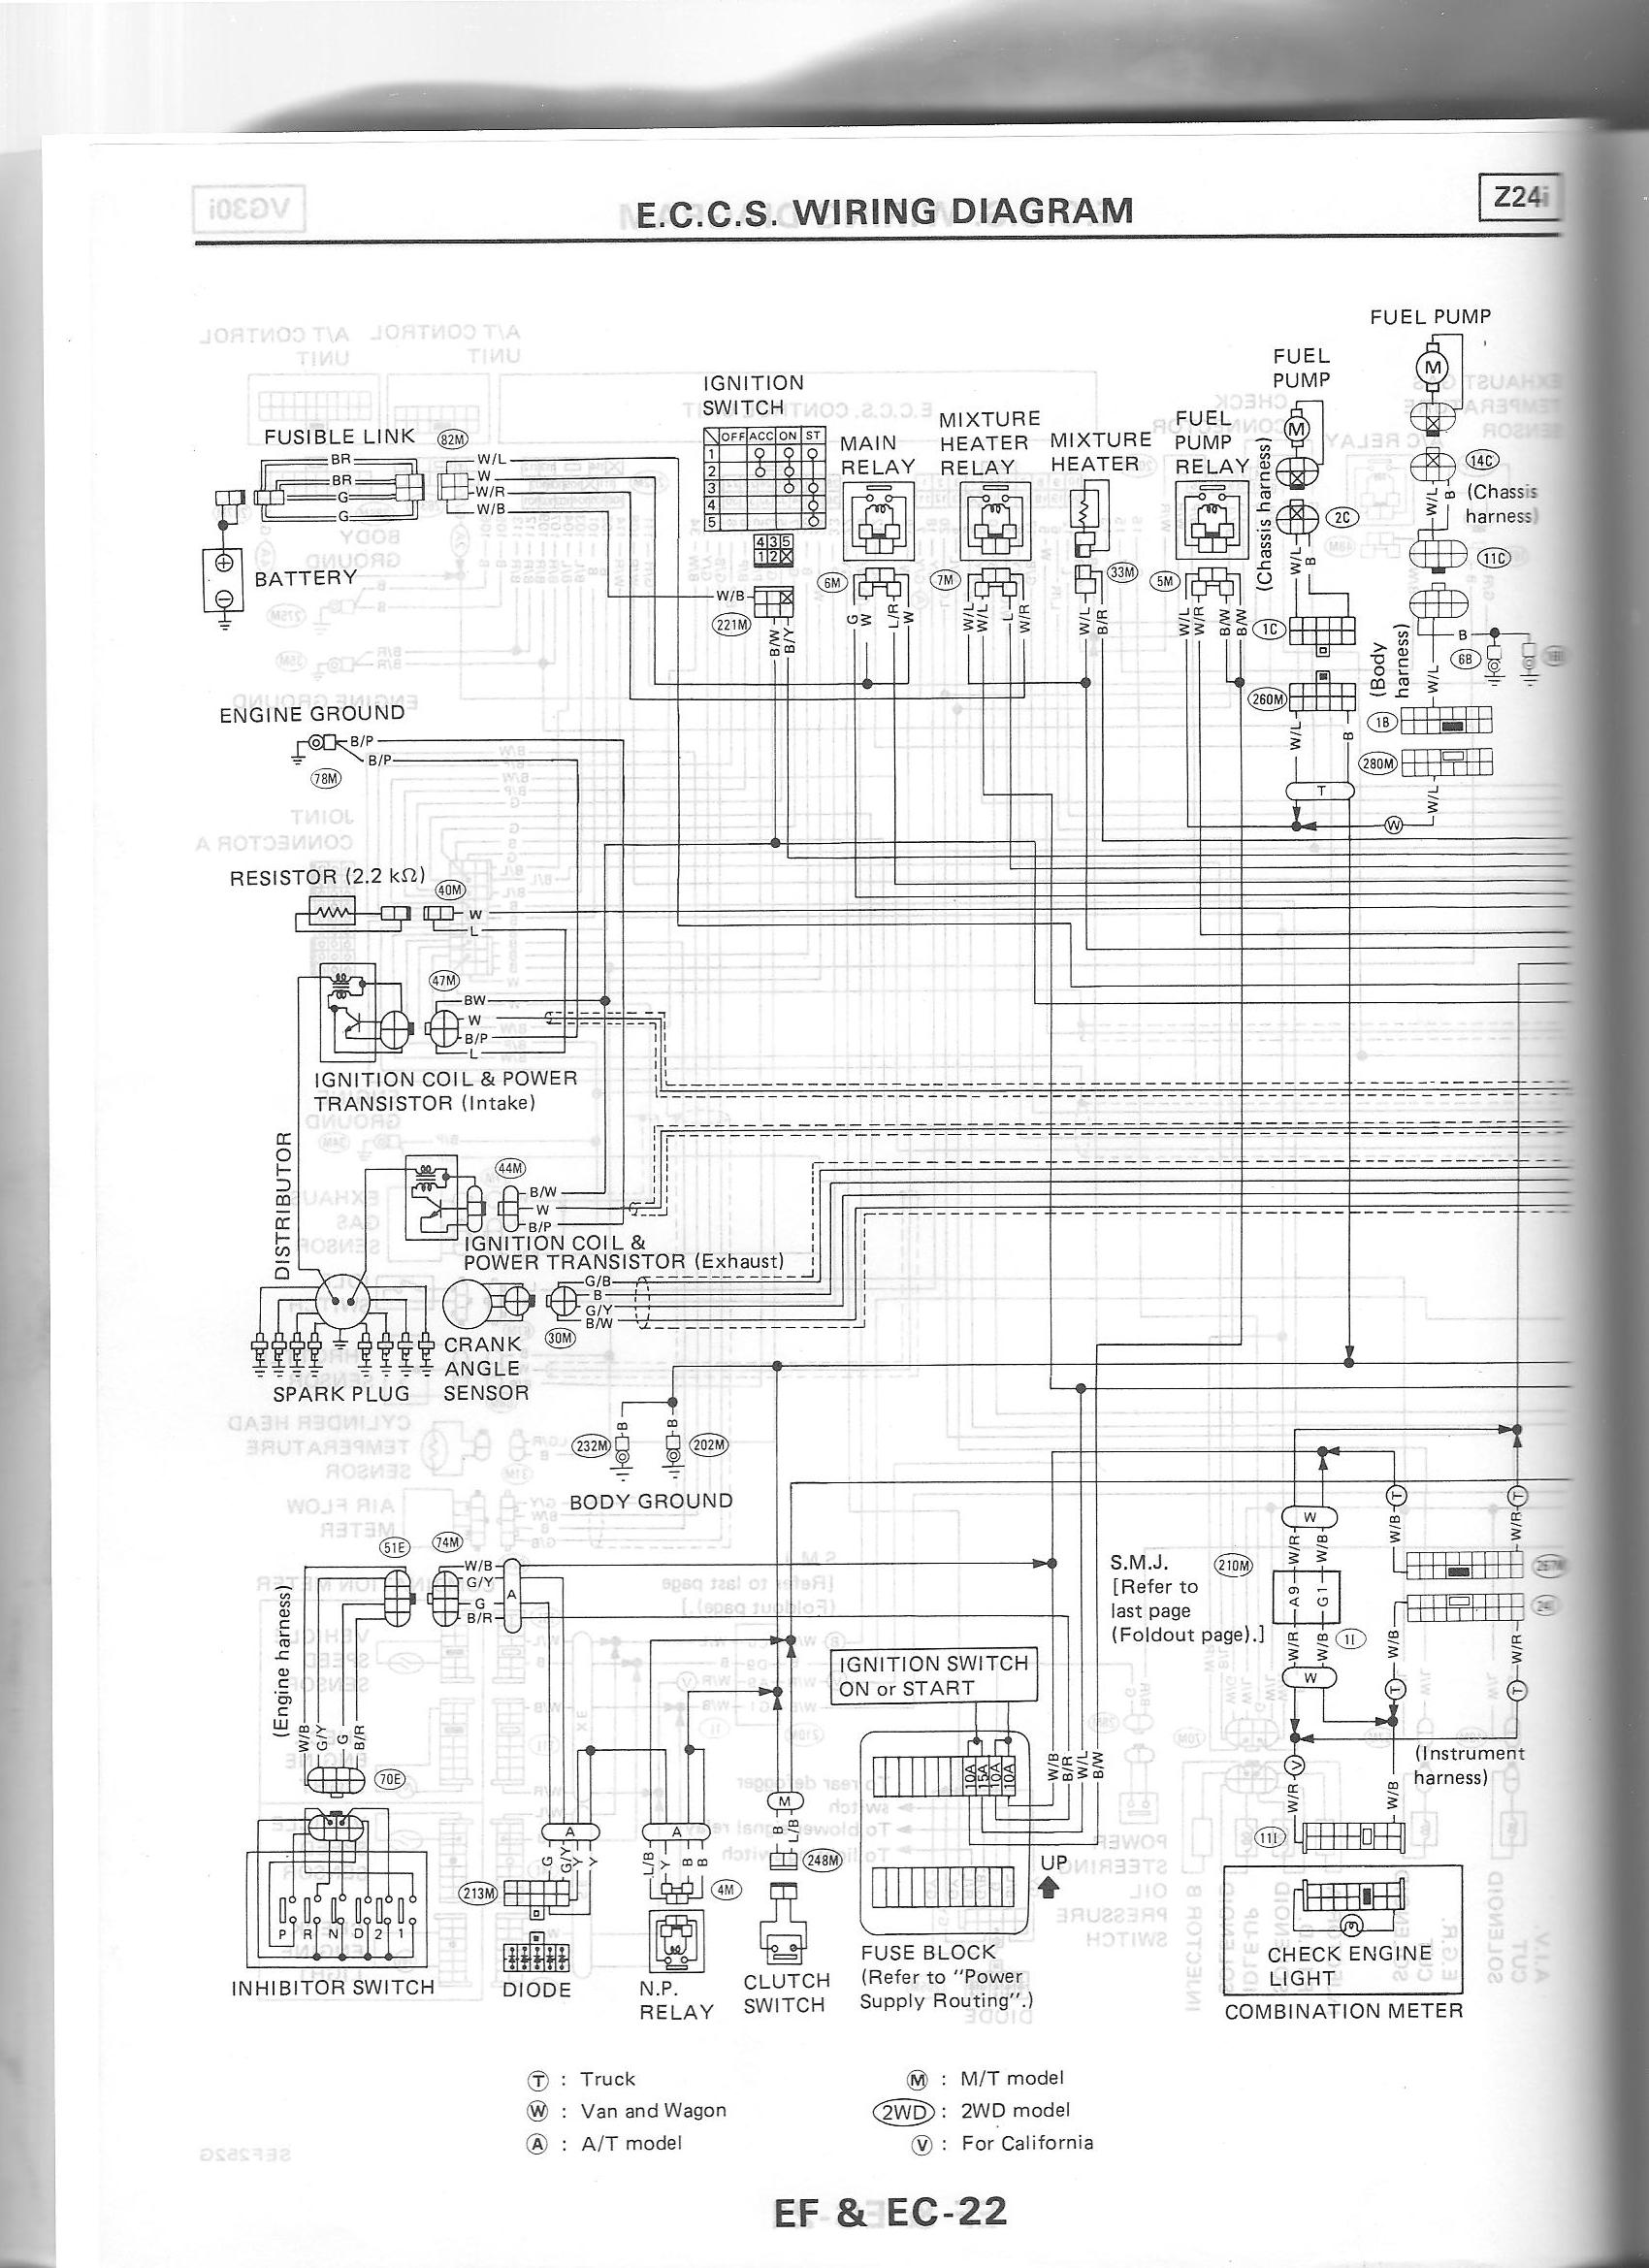 wiring1_88 nissan nut nissan d21 fuel pump wiring diagram at eliteediting.co